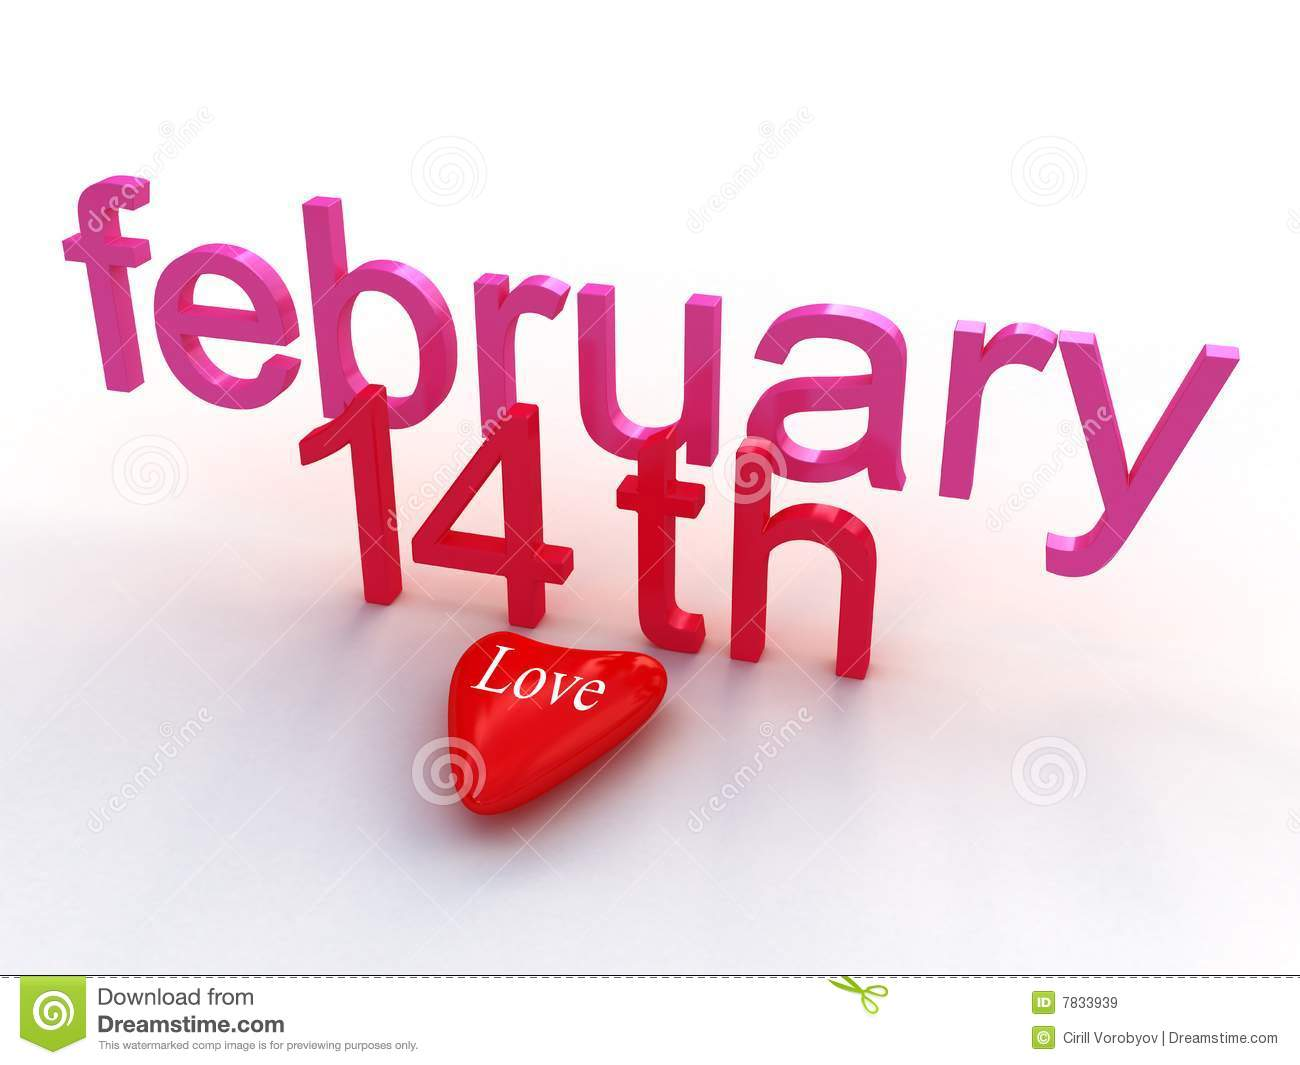 Feb 14th Valentines Day